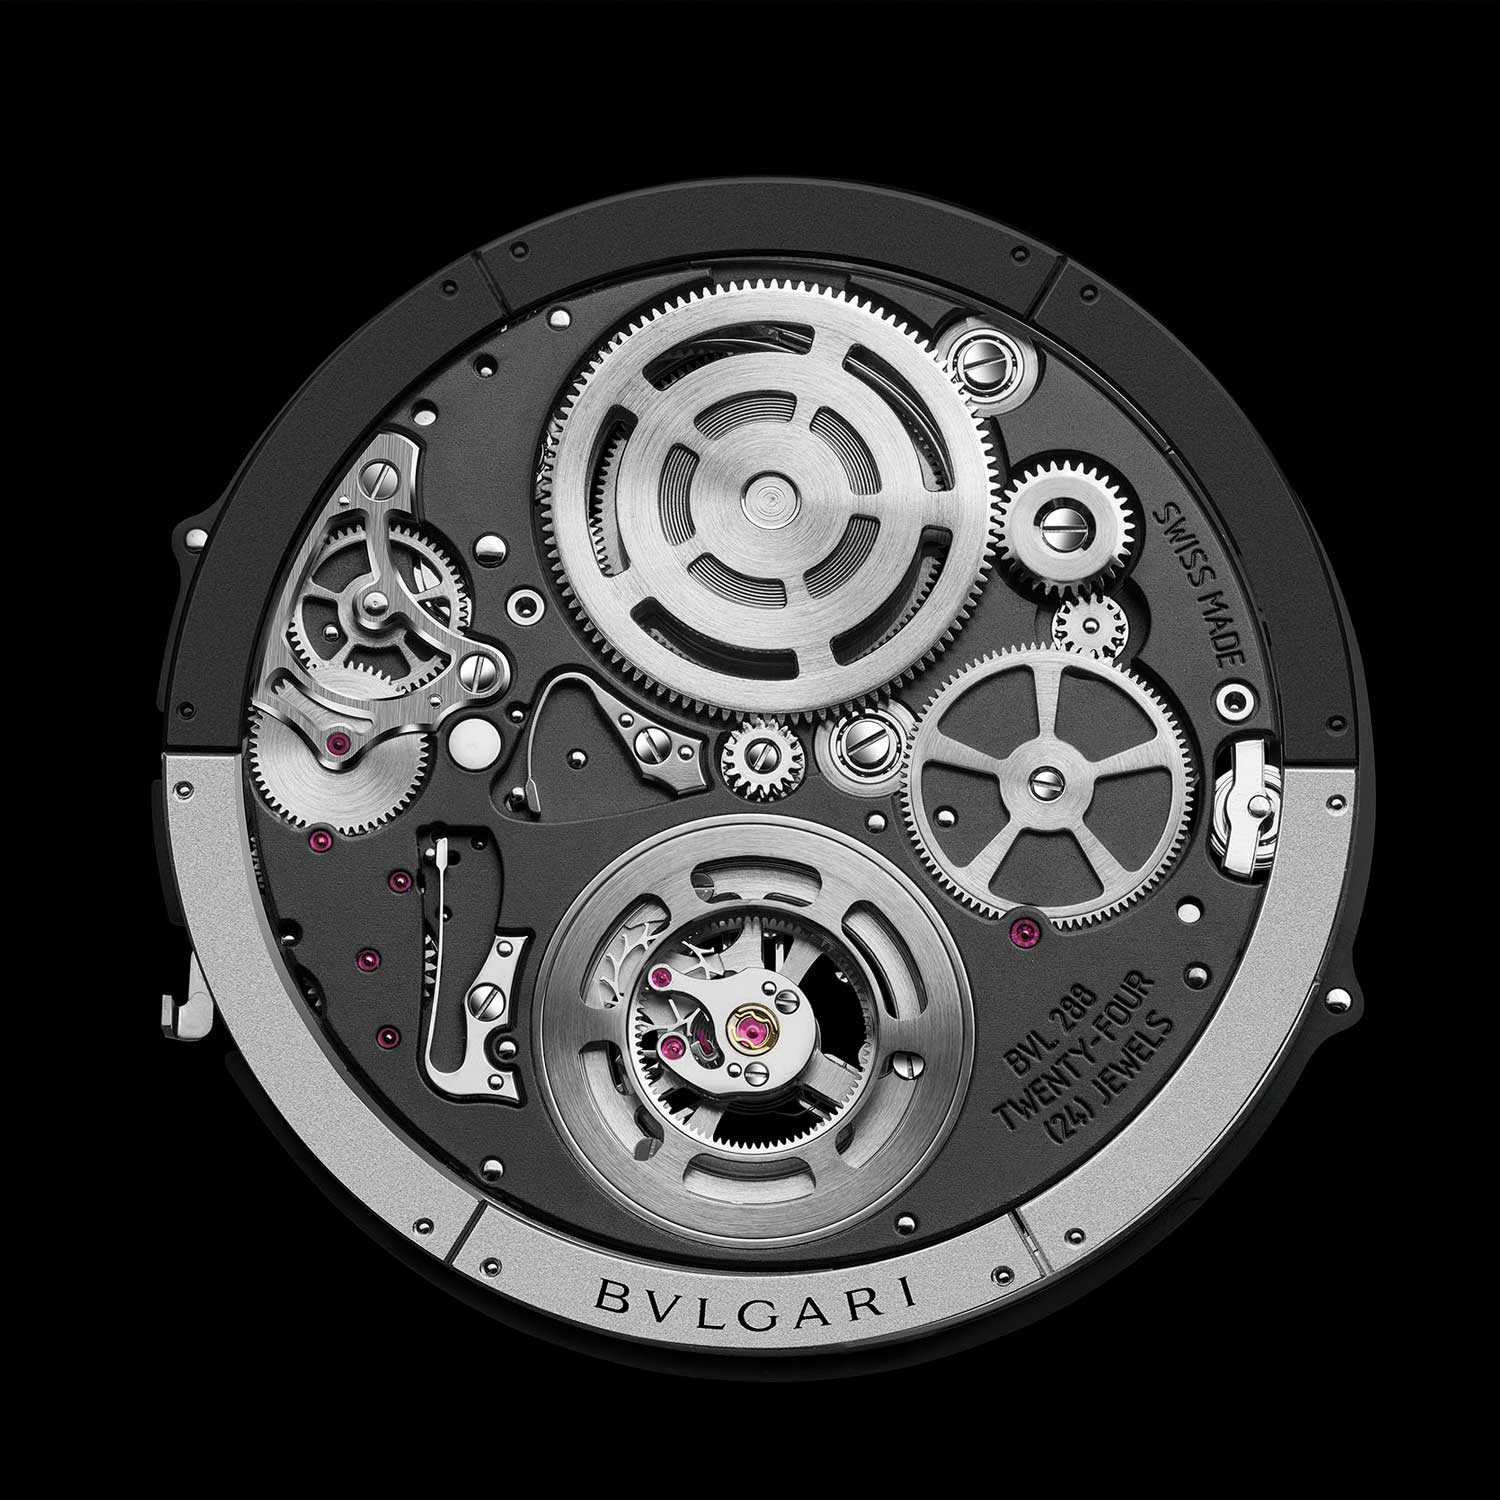 The Bvlgari BVL 228 Automatic Tourbillon movement seen from the back with the peripheral rotor visible